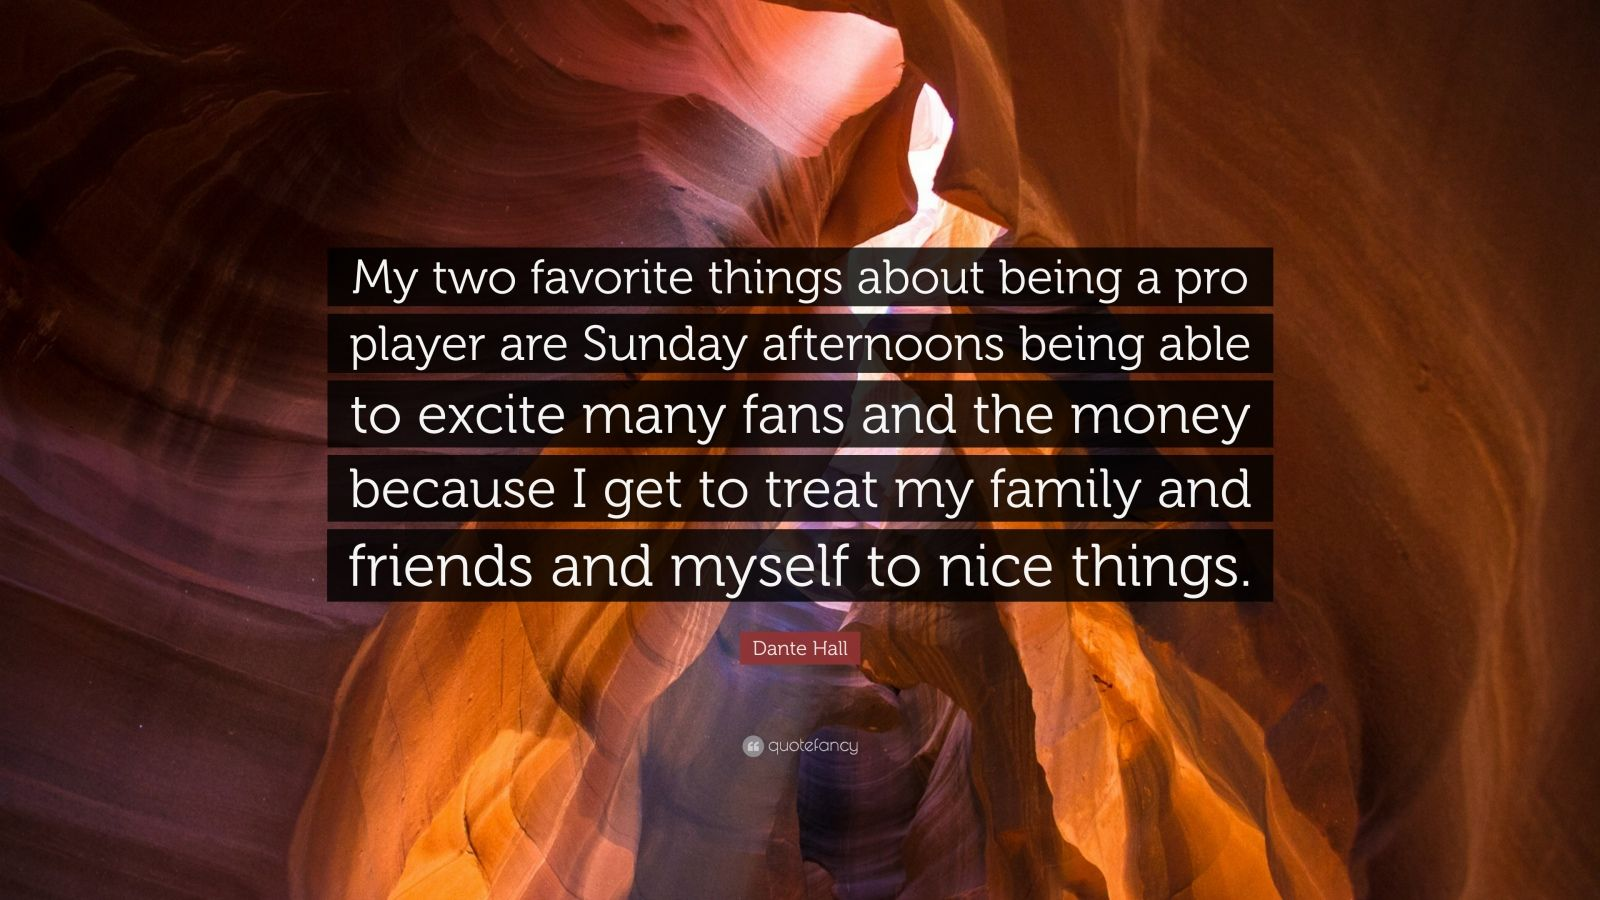 """Dante Hall Quote: """"My two favorite things about being a pro player are Sunday afternoons being able to excite many fans and the money because I get to treat my family and friends and myself to nice things."""""""